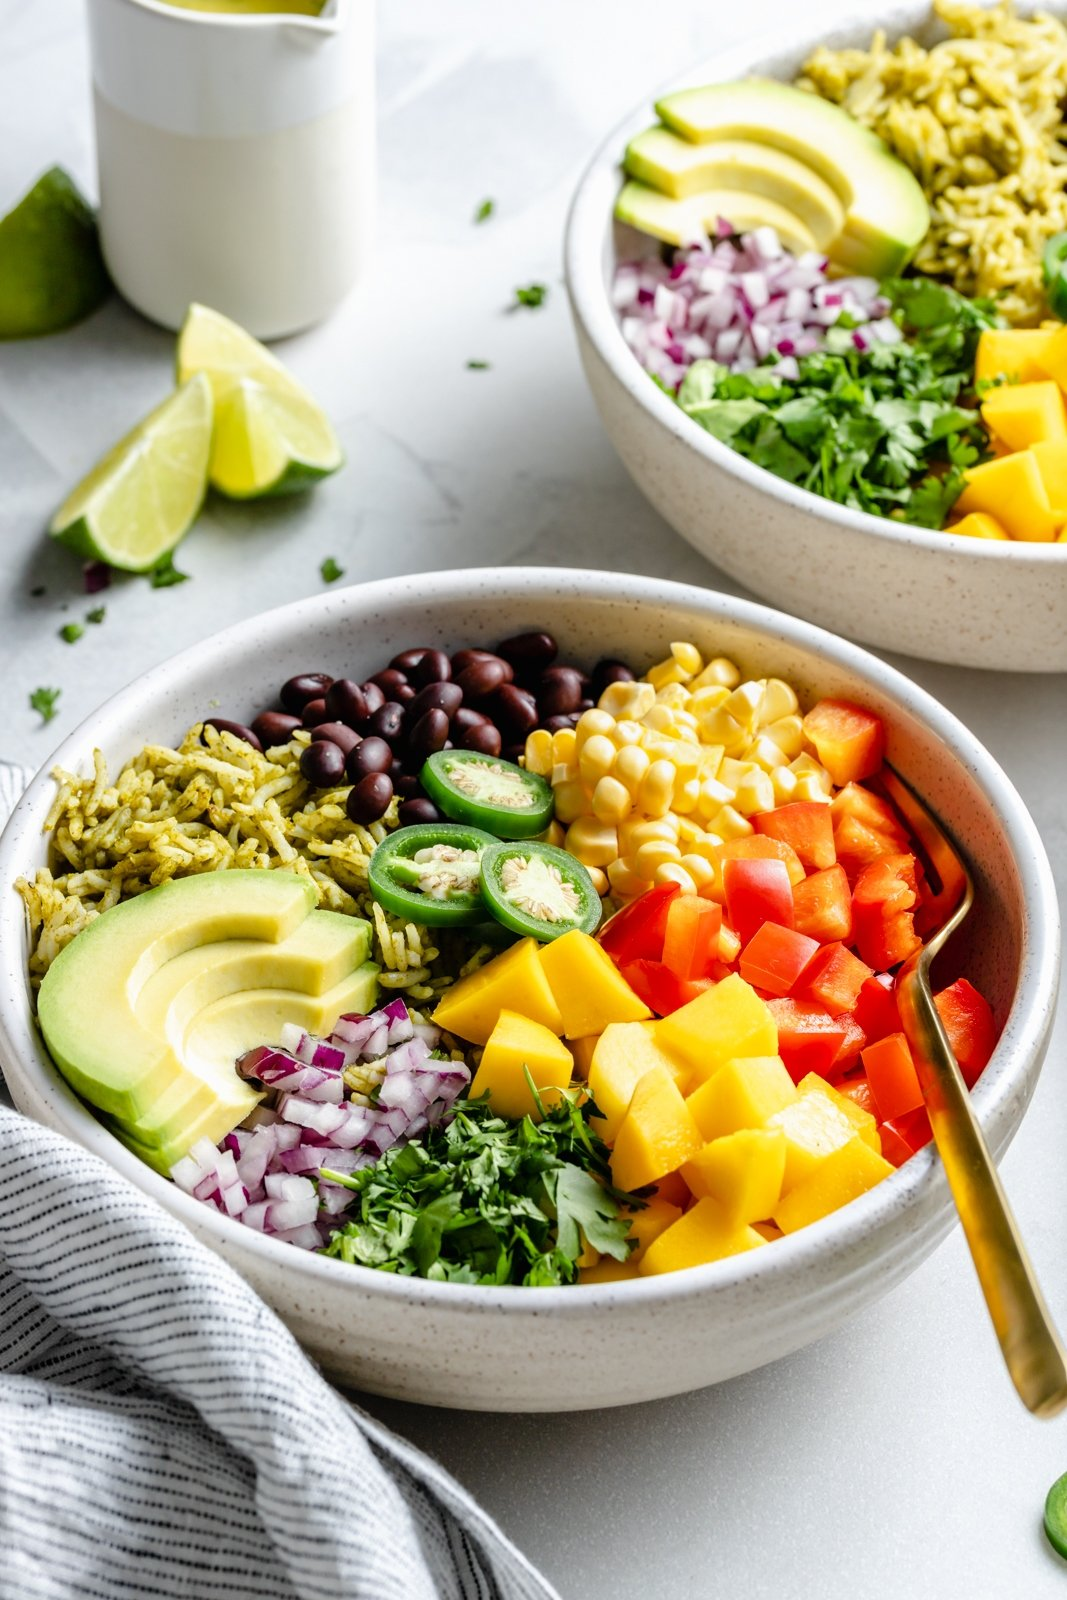 vegetarian green rice bowls topped with veggies and mango